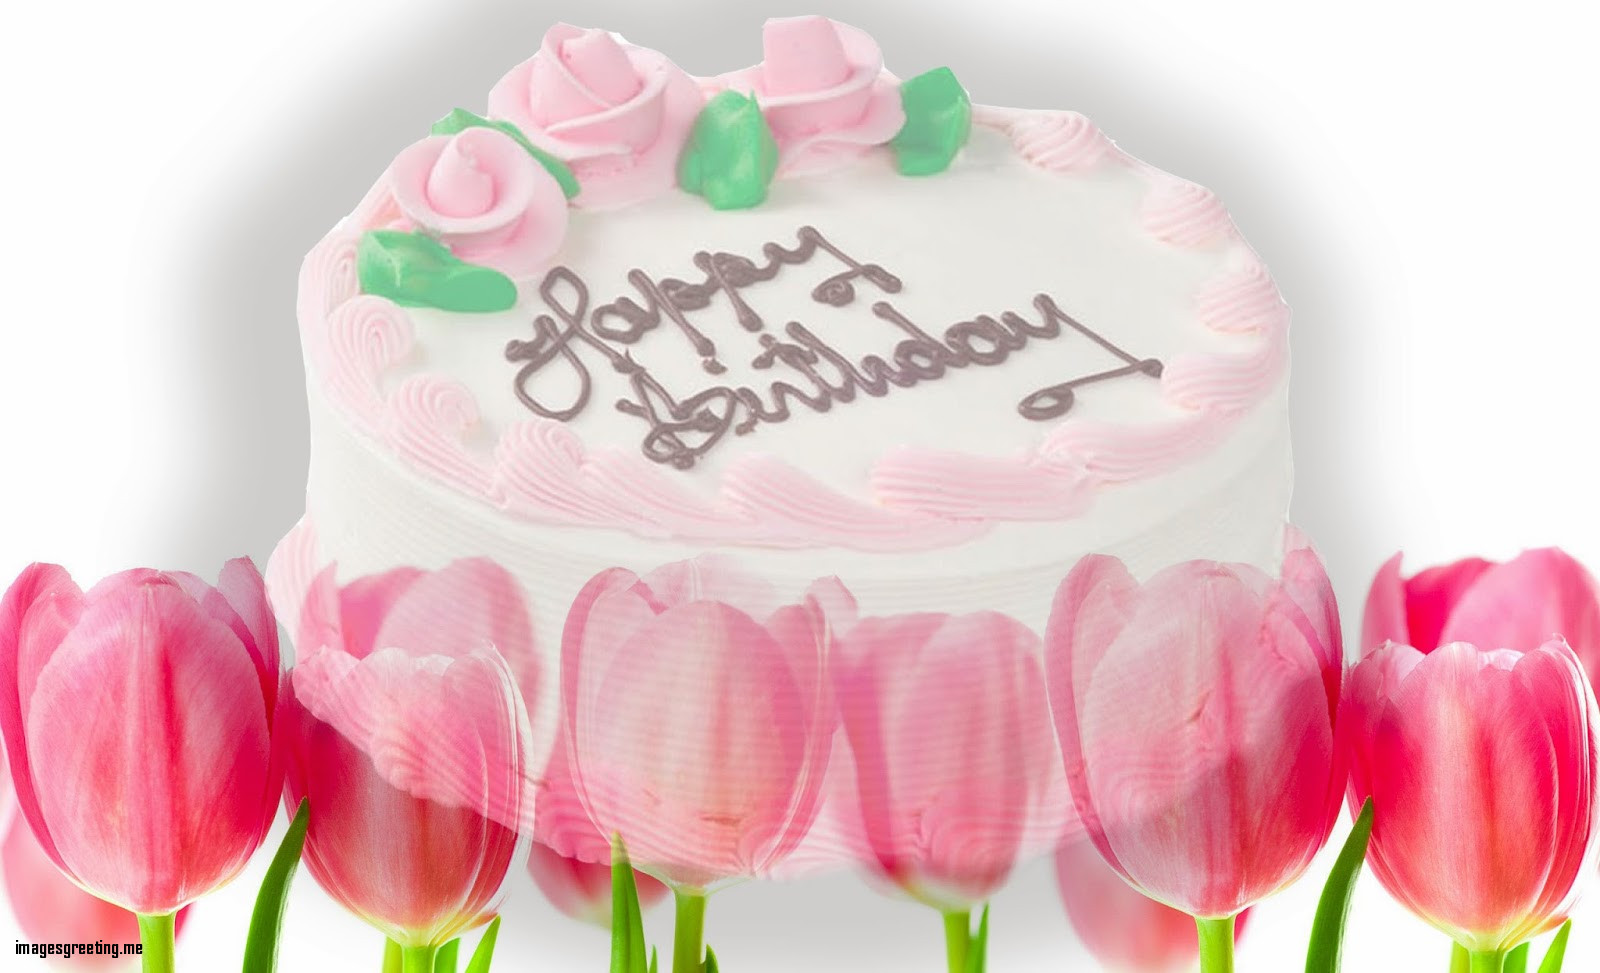 birthday wishes images download ; luxury-happy-birthday-wishes-images-free-within-new-download-images-of-happy-birthday-wishes-of-download-images-of-happy-birthday-wishes